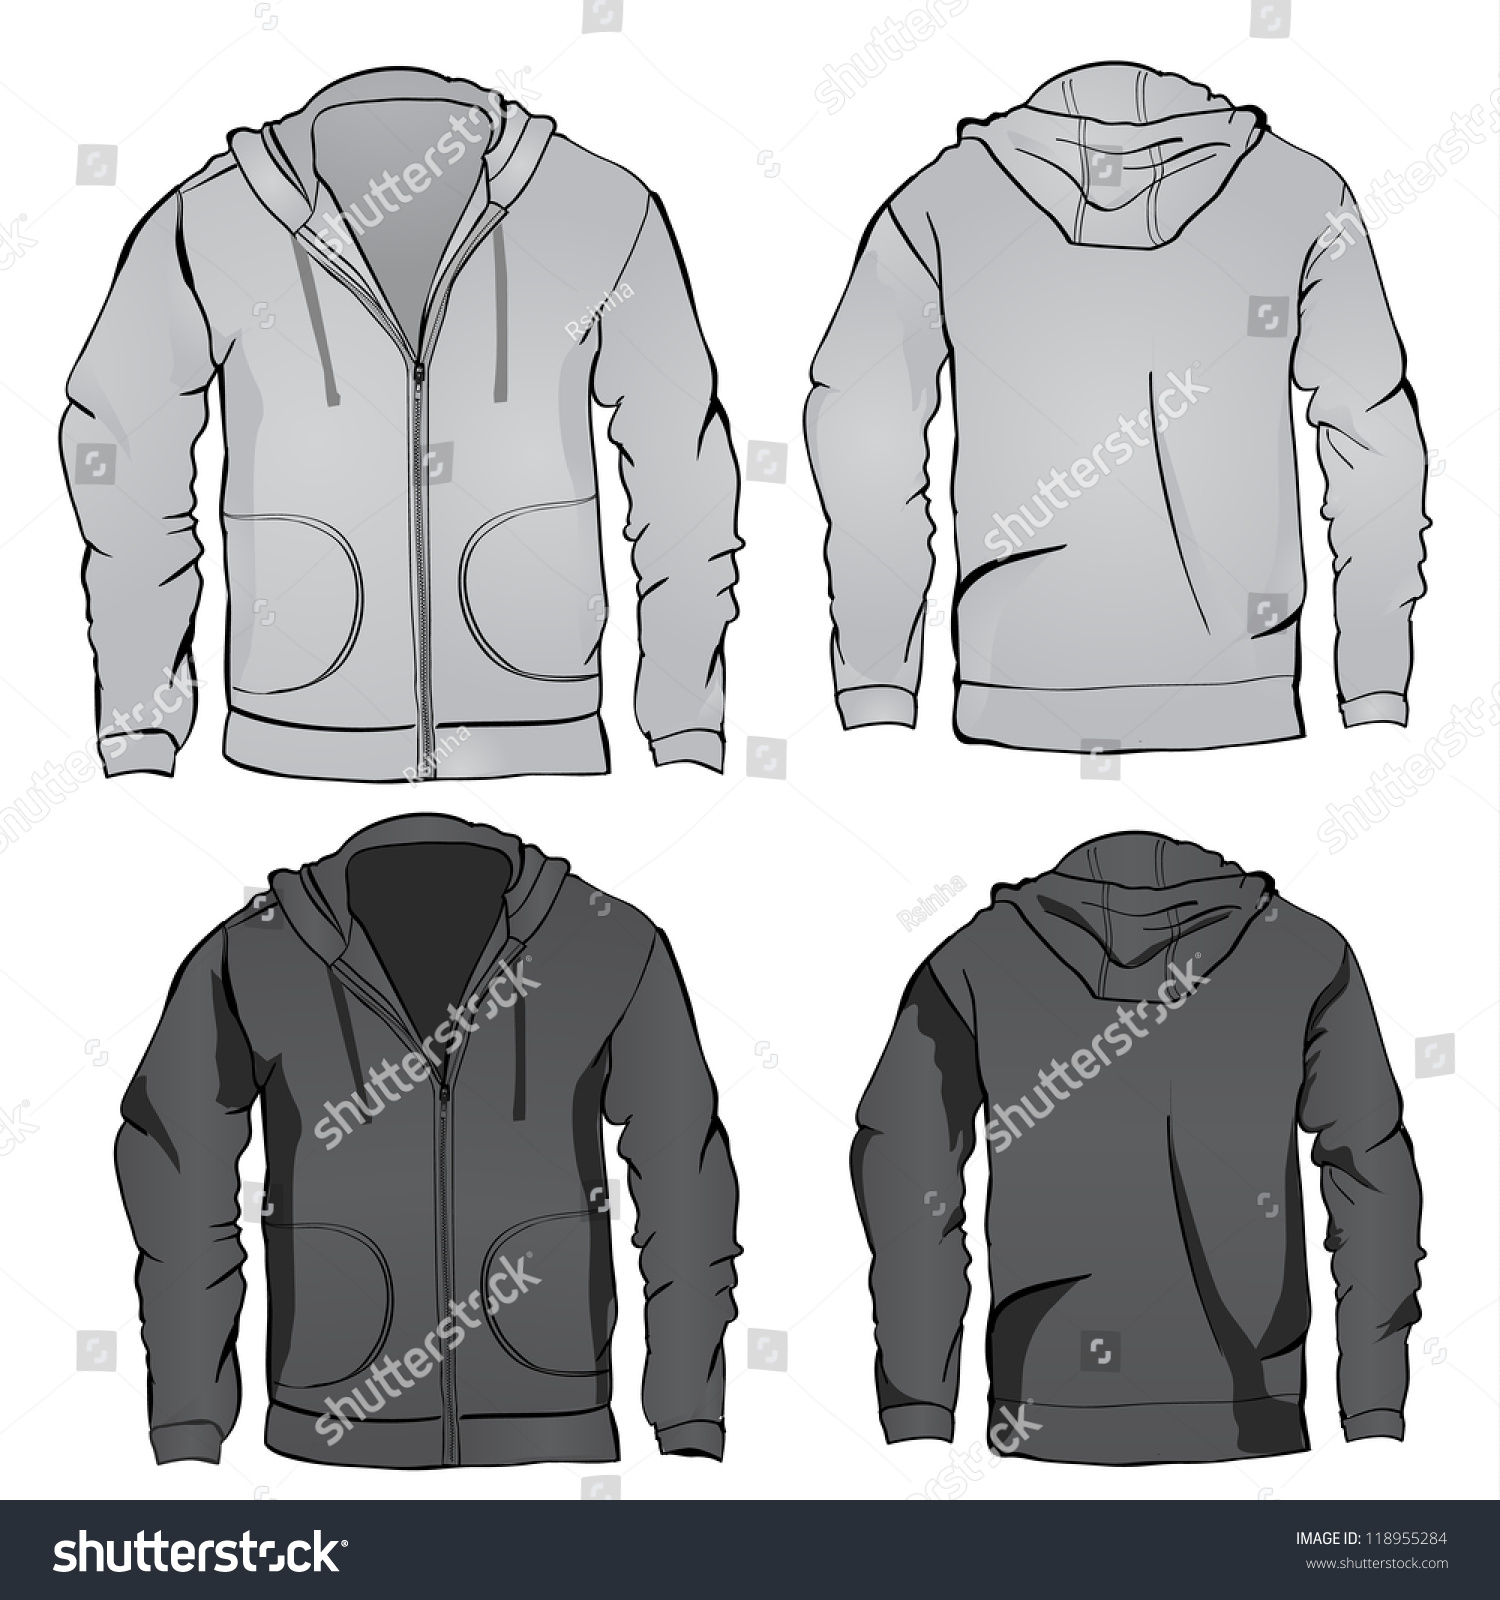 Black Jacket Template - Coat Nj